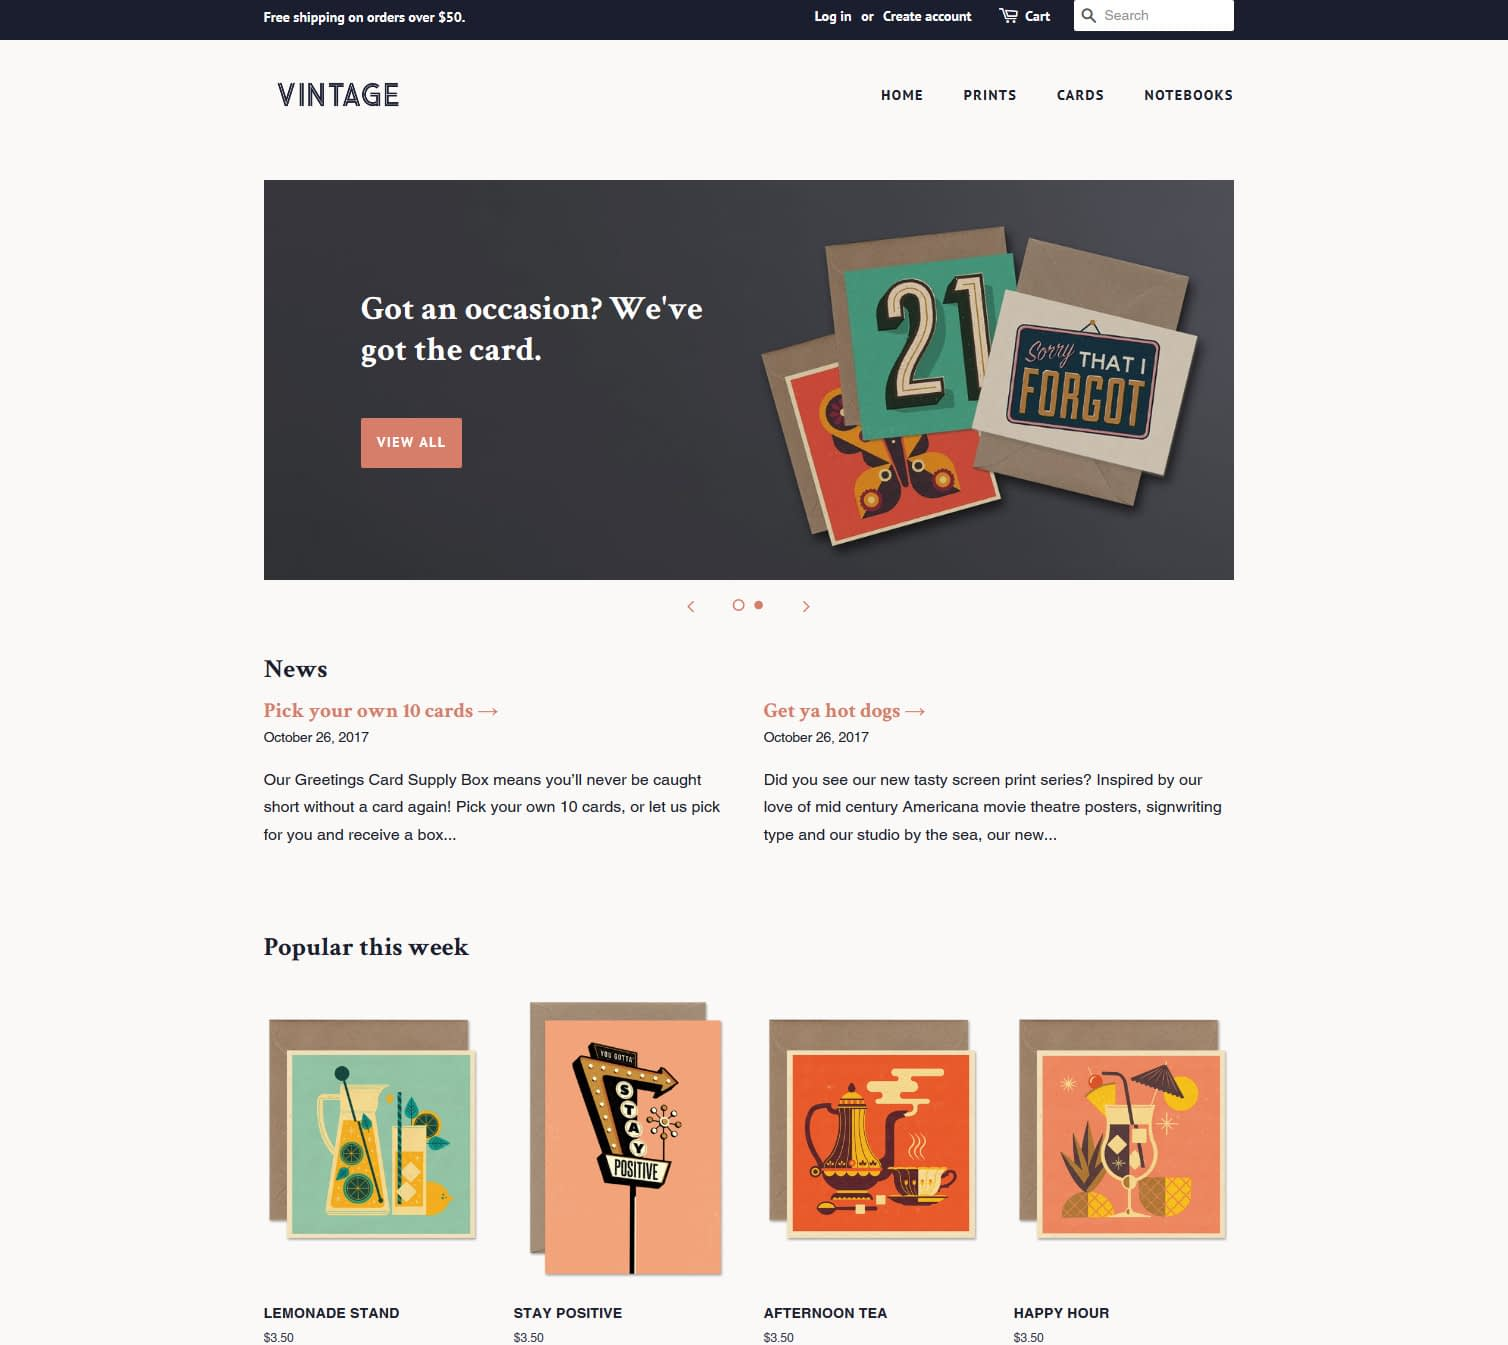 minimal is one of the free Shopify themes